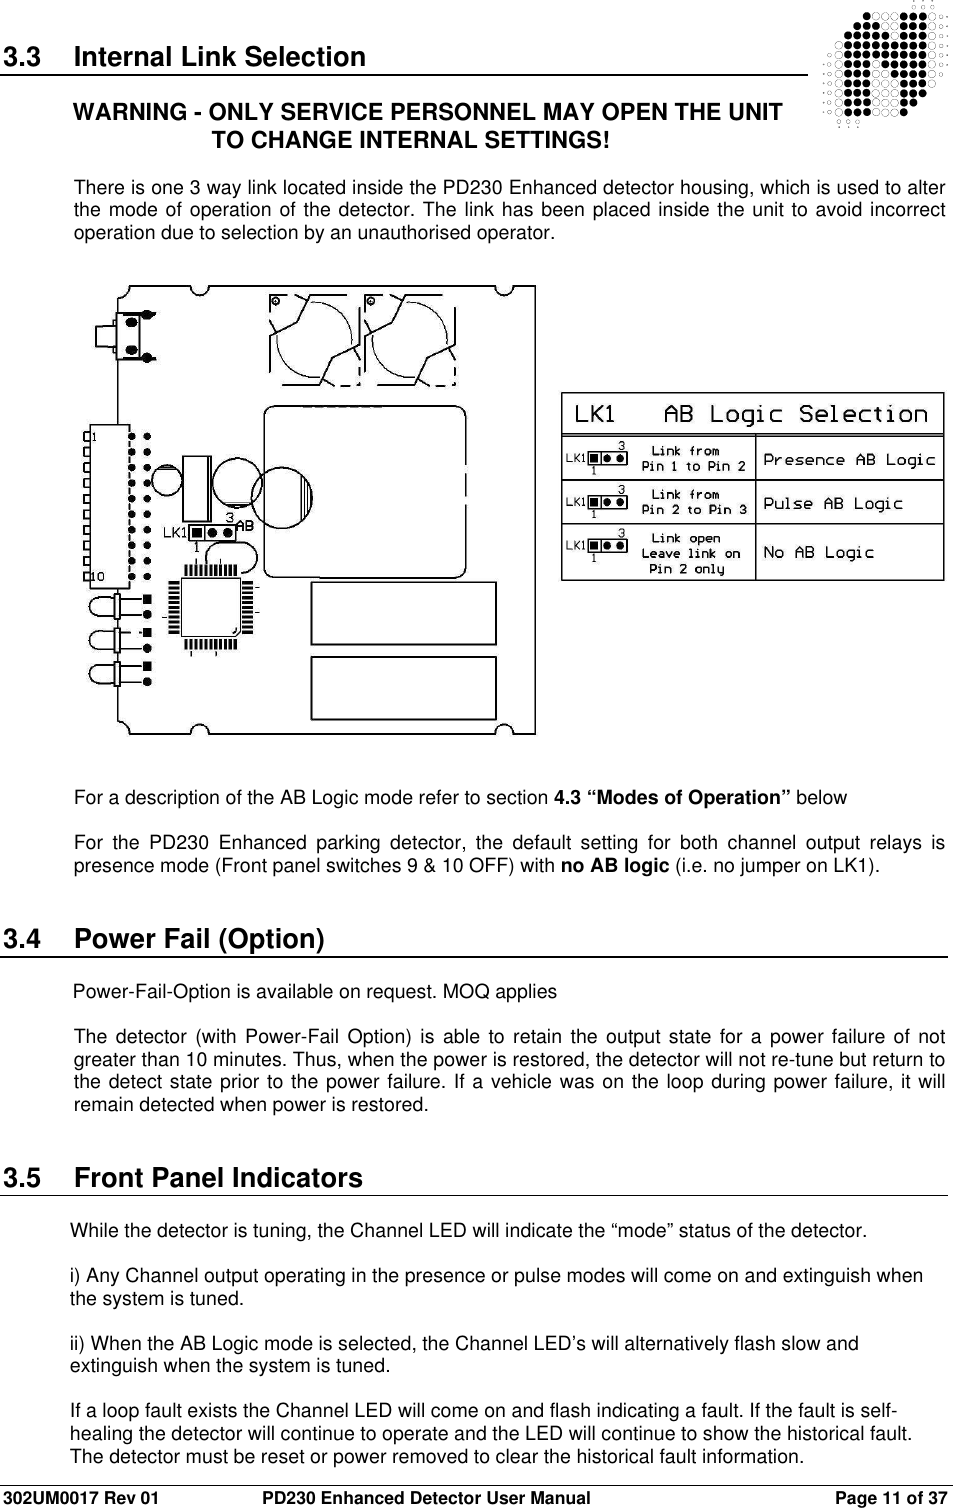 Nortech Pd230td236 Vehicle Detector User Manual 302um0017 01a Pd230 3 Way Switch History Rev 01 Enhanced Page 11 Of 37 33 Internal Link Selection